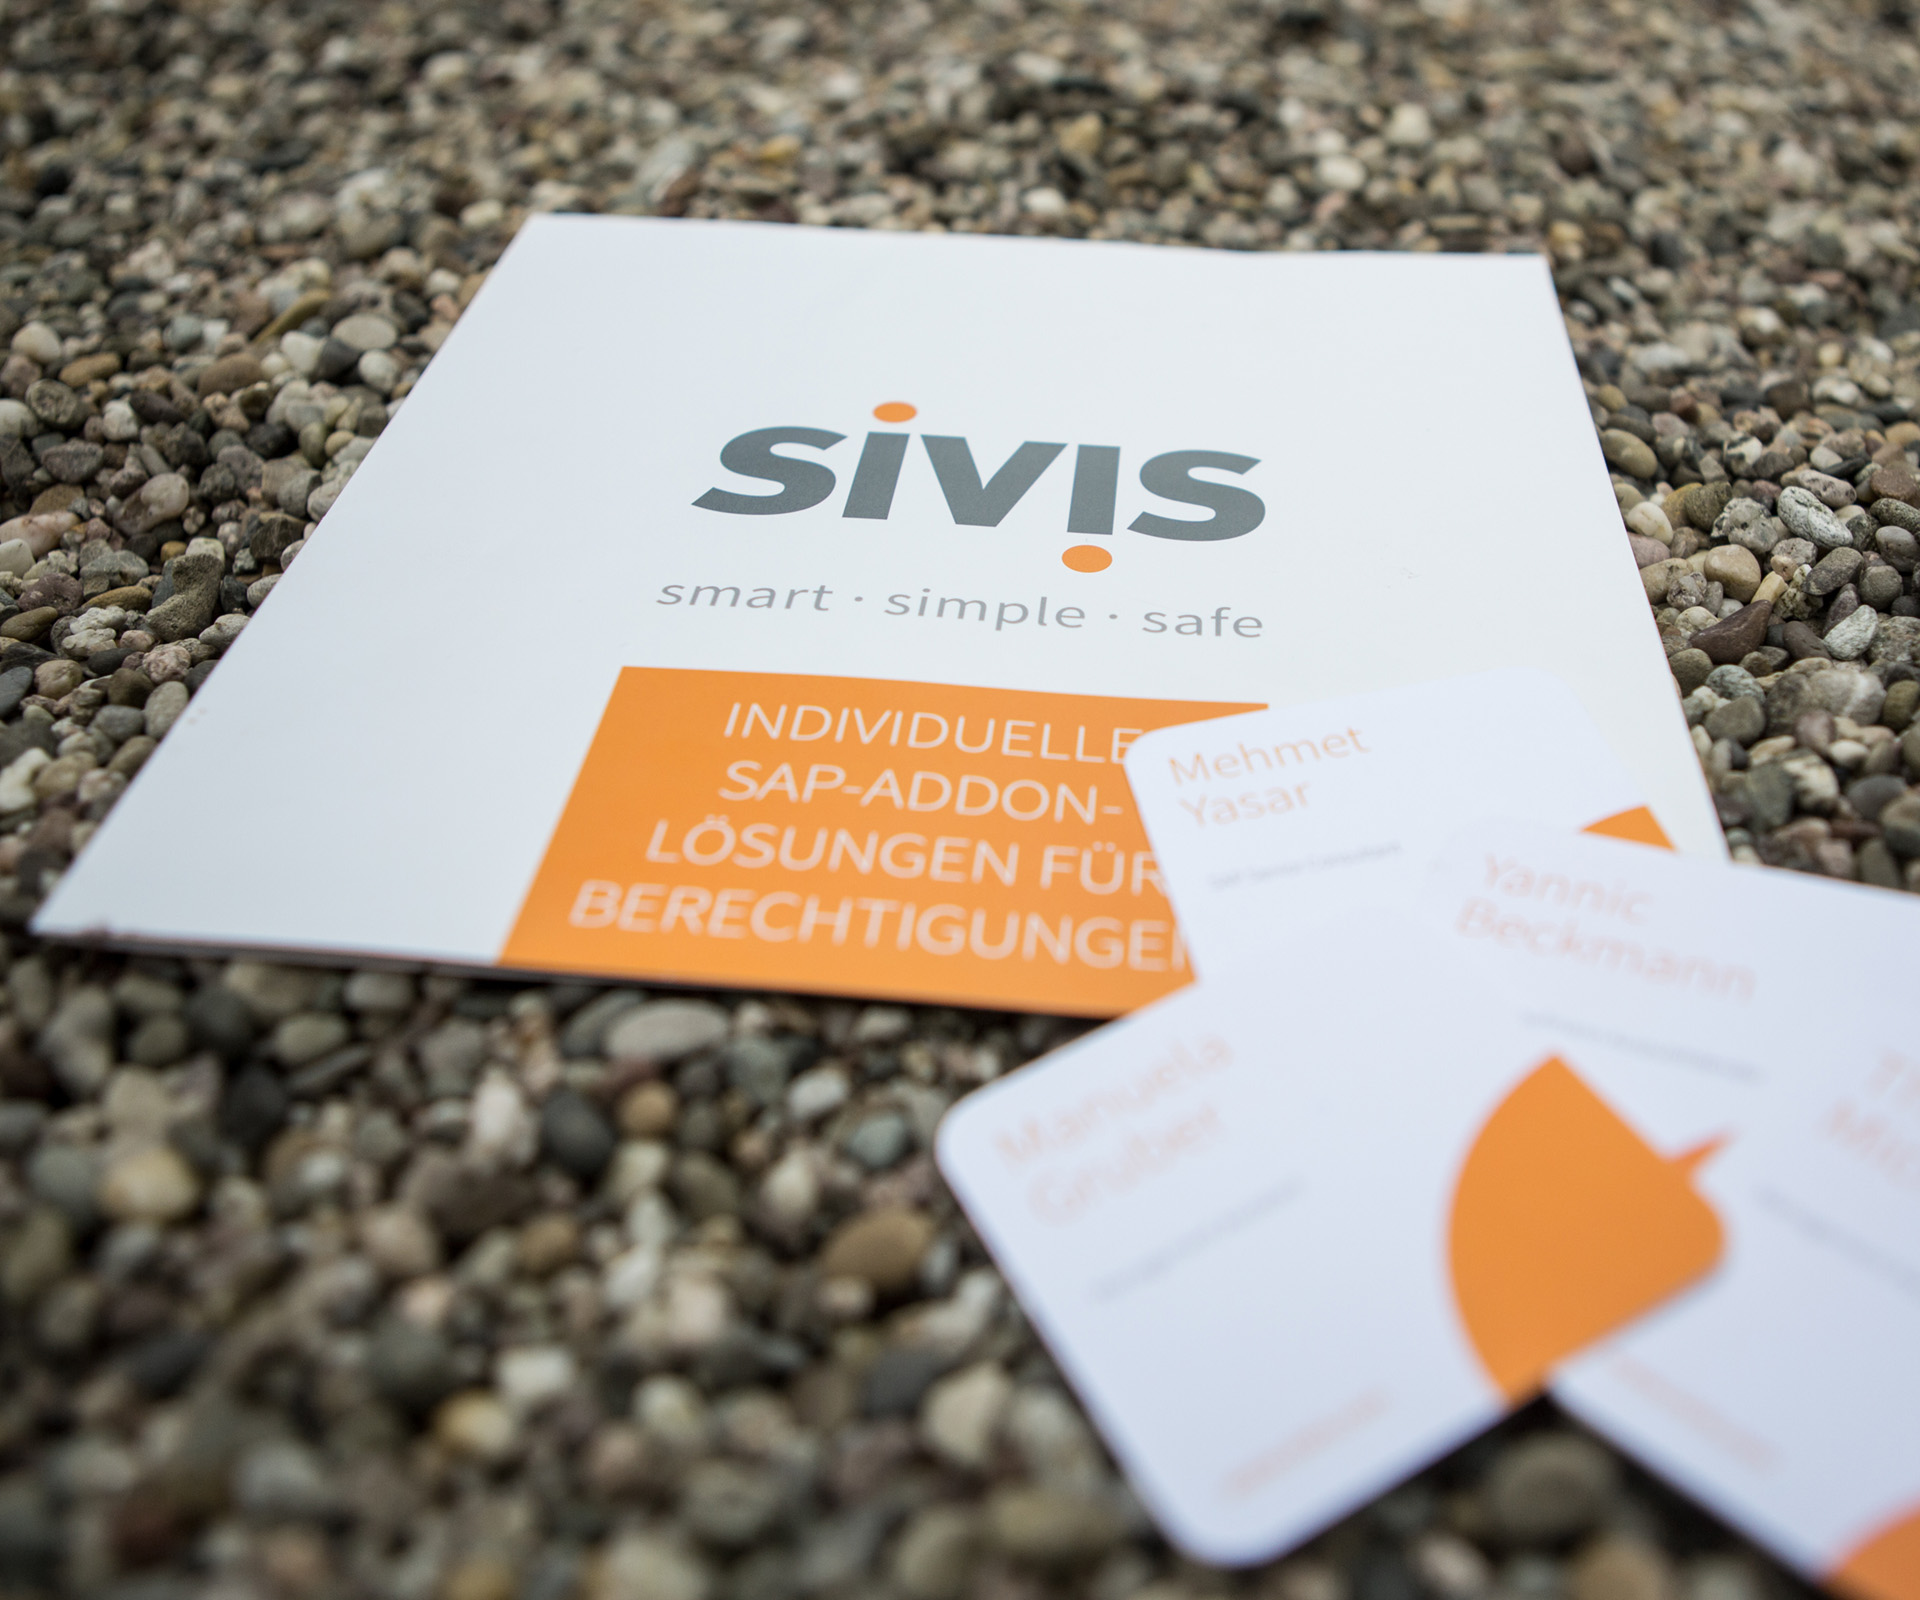 Sabath Media Werbeagentur - Sivis – Corporate Design - Referenzbild 1